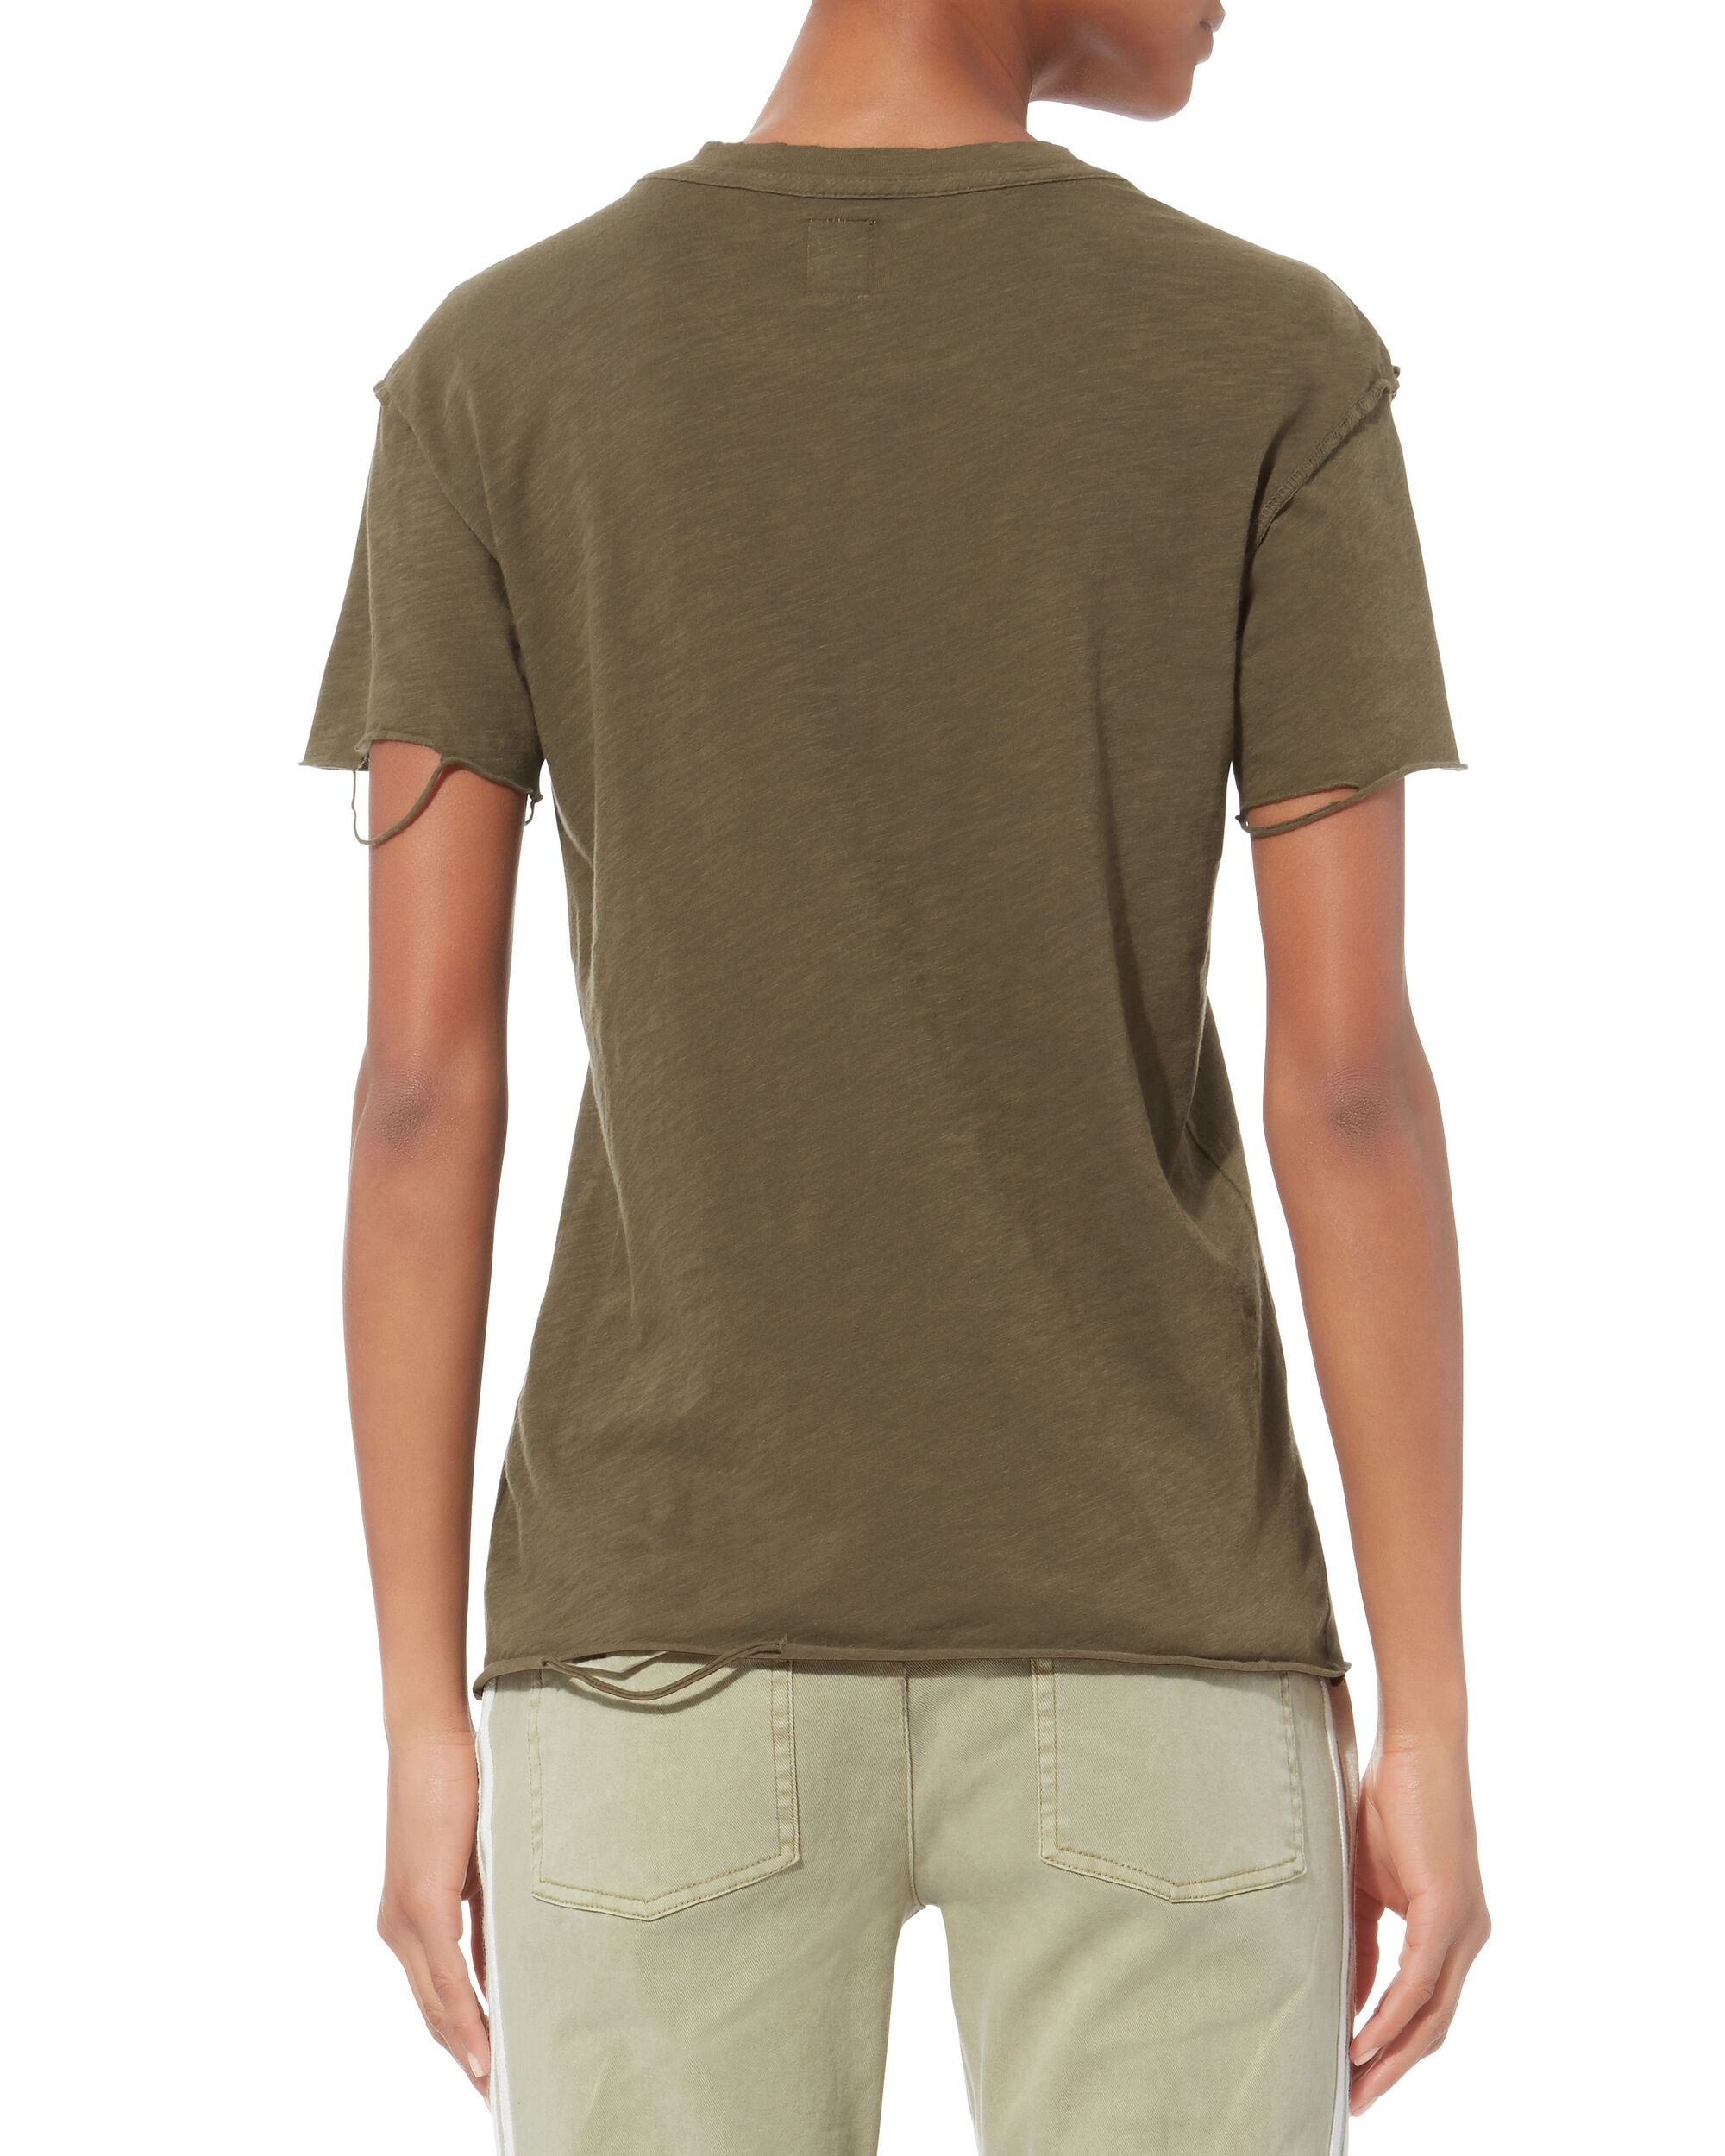 Moore Army Tee, ARMY GREEN, hi-res